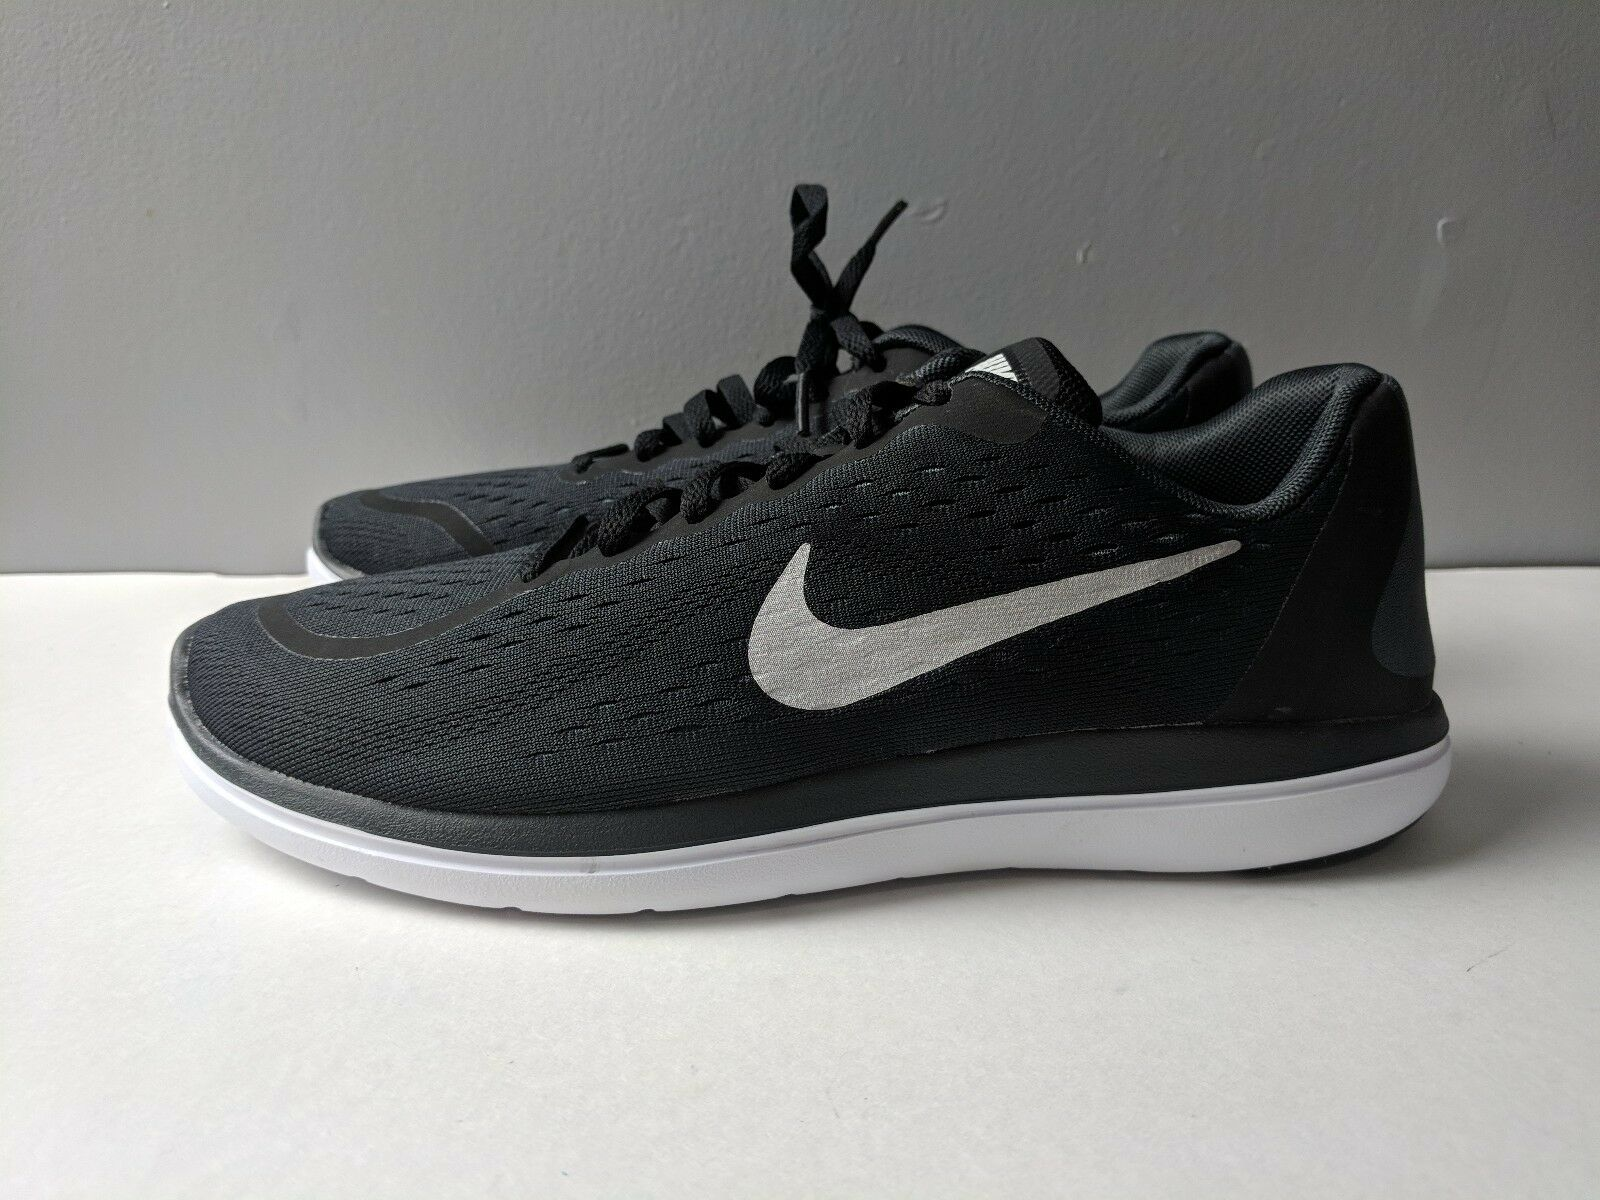 43aebc96a044 Brand New Nike Kids Boys Flex 2017 RN Running Shoes Black Silver Youth Size  7 1 of 7Only 1 available ...